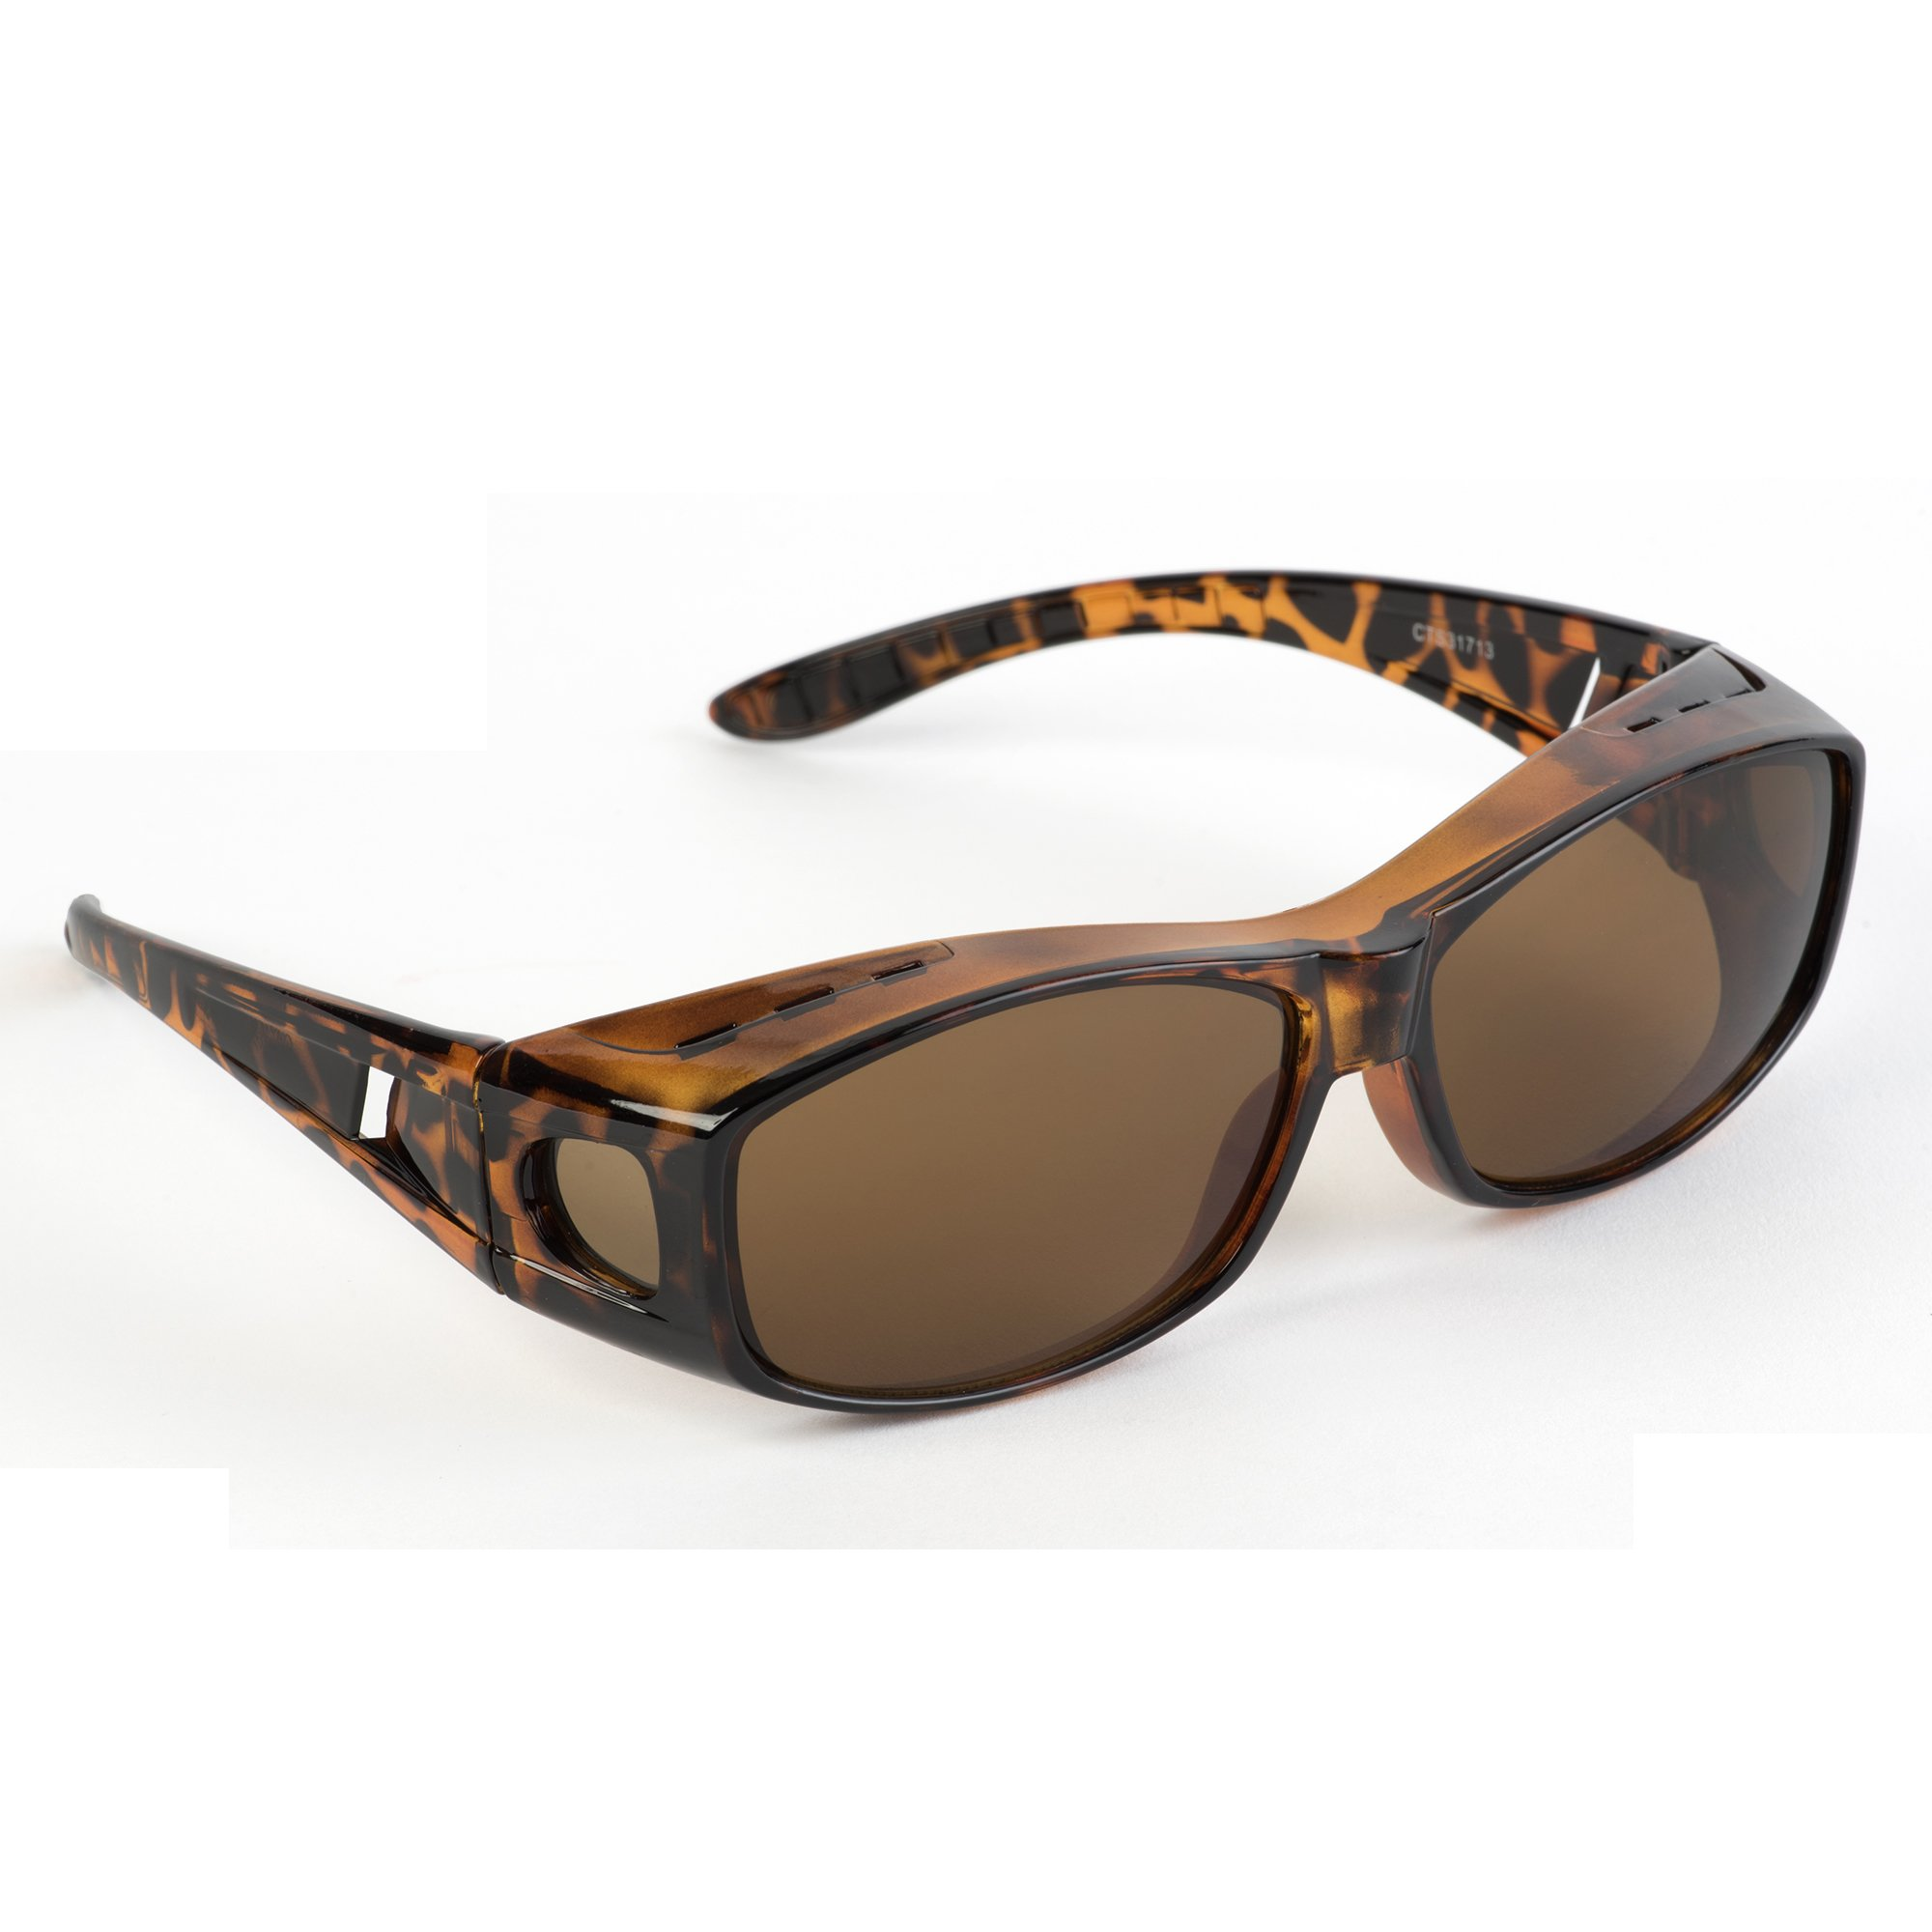 Over Glasses Sunglasses - Fitover Sunglasses with 100% UV Protection - By Pointed Designs (Leopard) by Pointed Designs (Image #1)